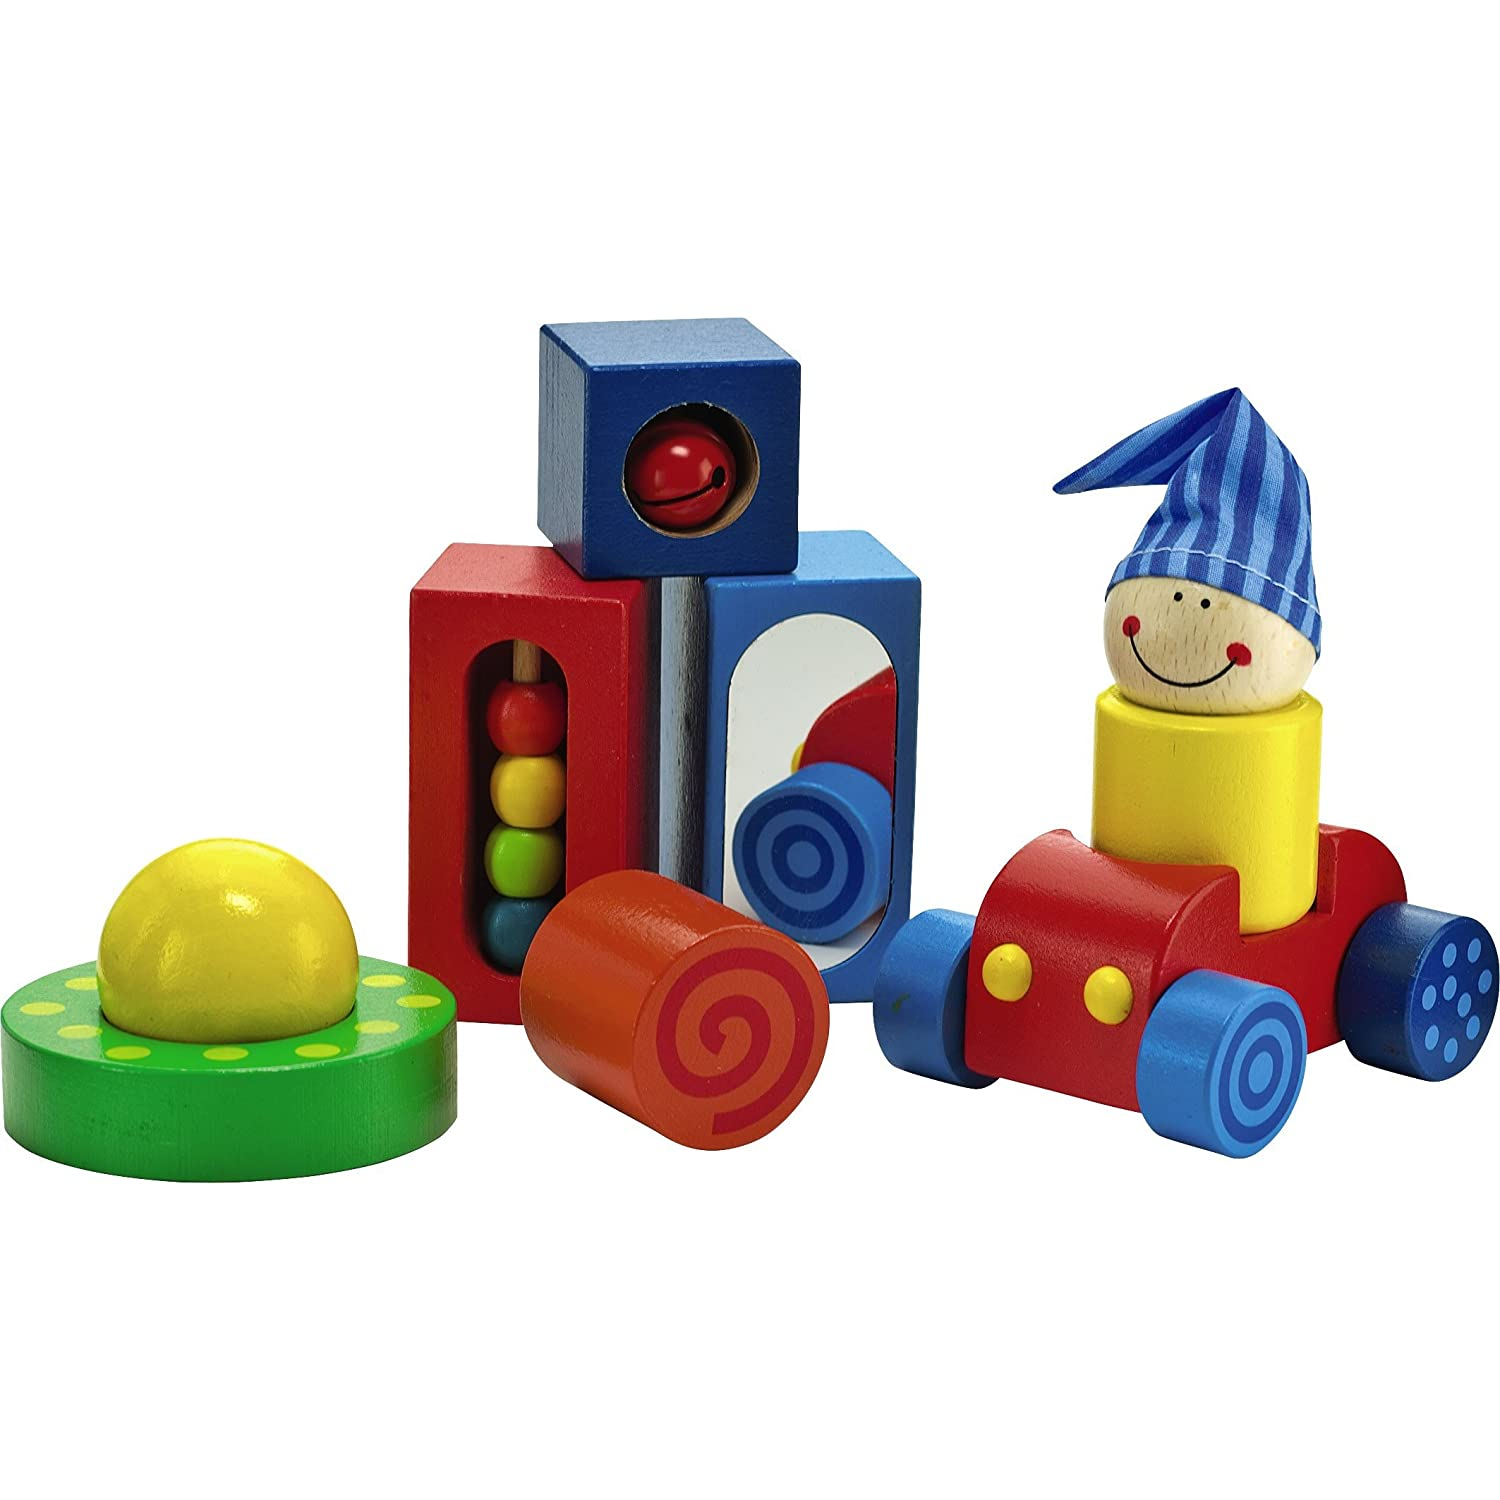 HABA Play Shapes 8 Piece First Building Block Set for Ages 12 Months and Up SG/_B0196UGQNE/_US